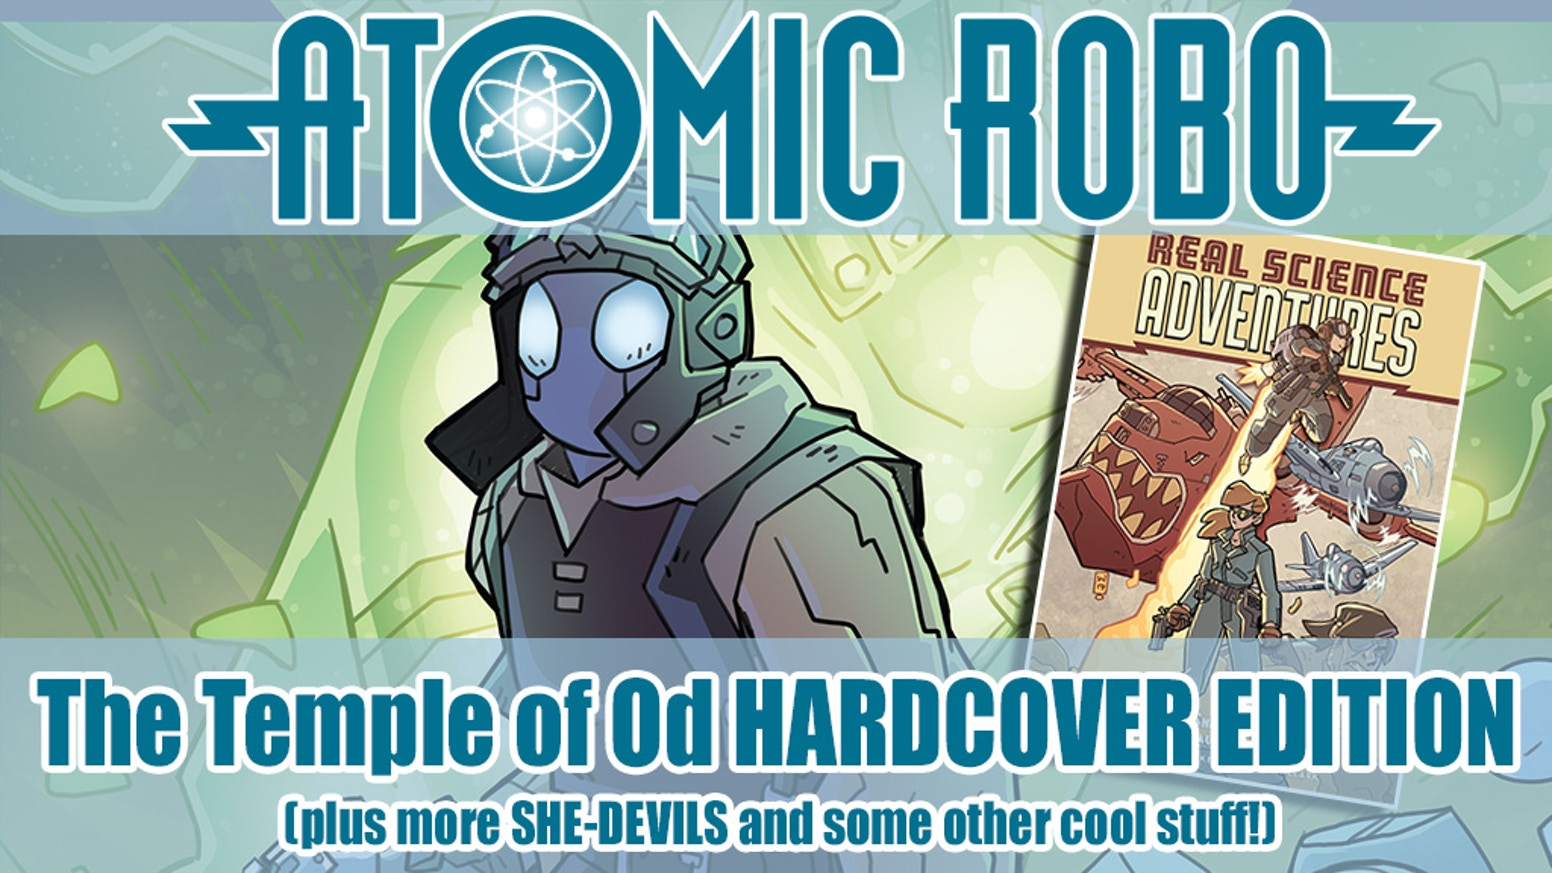 A super fancy hardcover edition of ATOMIC ROBO AND THE TEMPLE OF OD. Plus air pirate action with the Flying She-Devils!